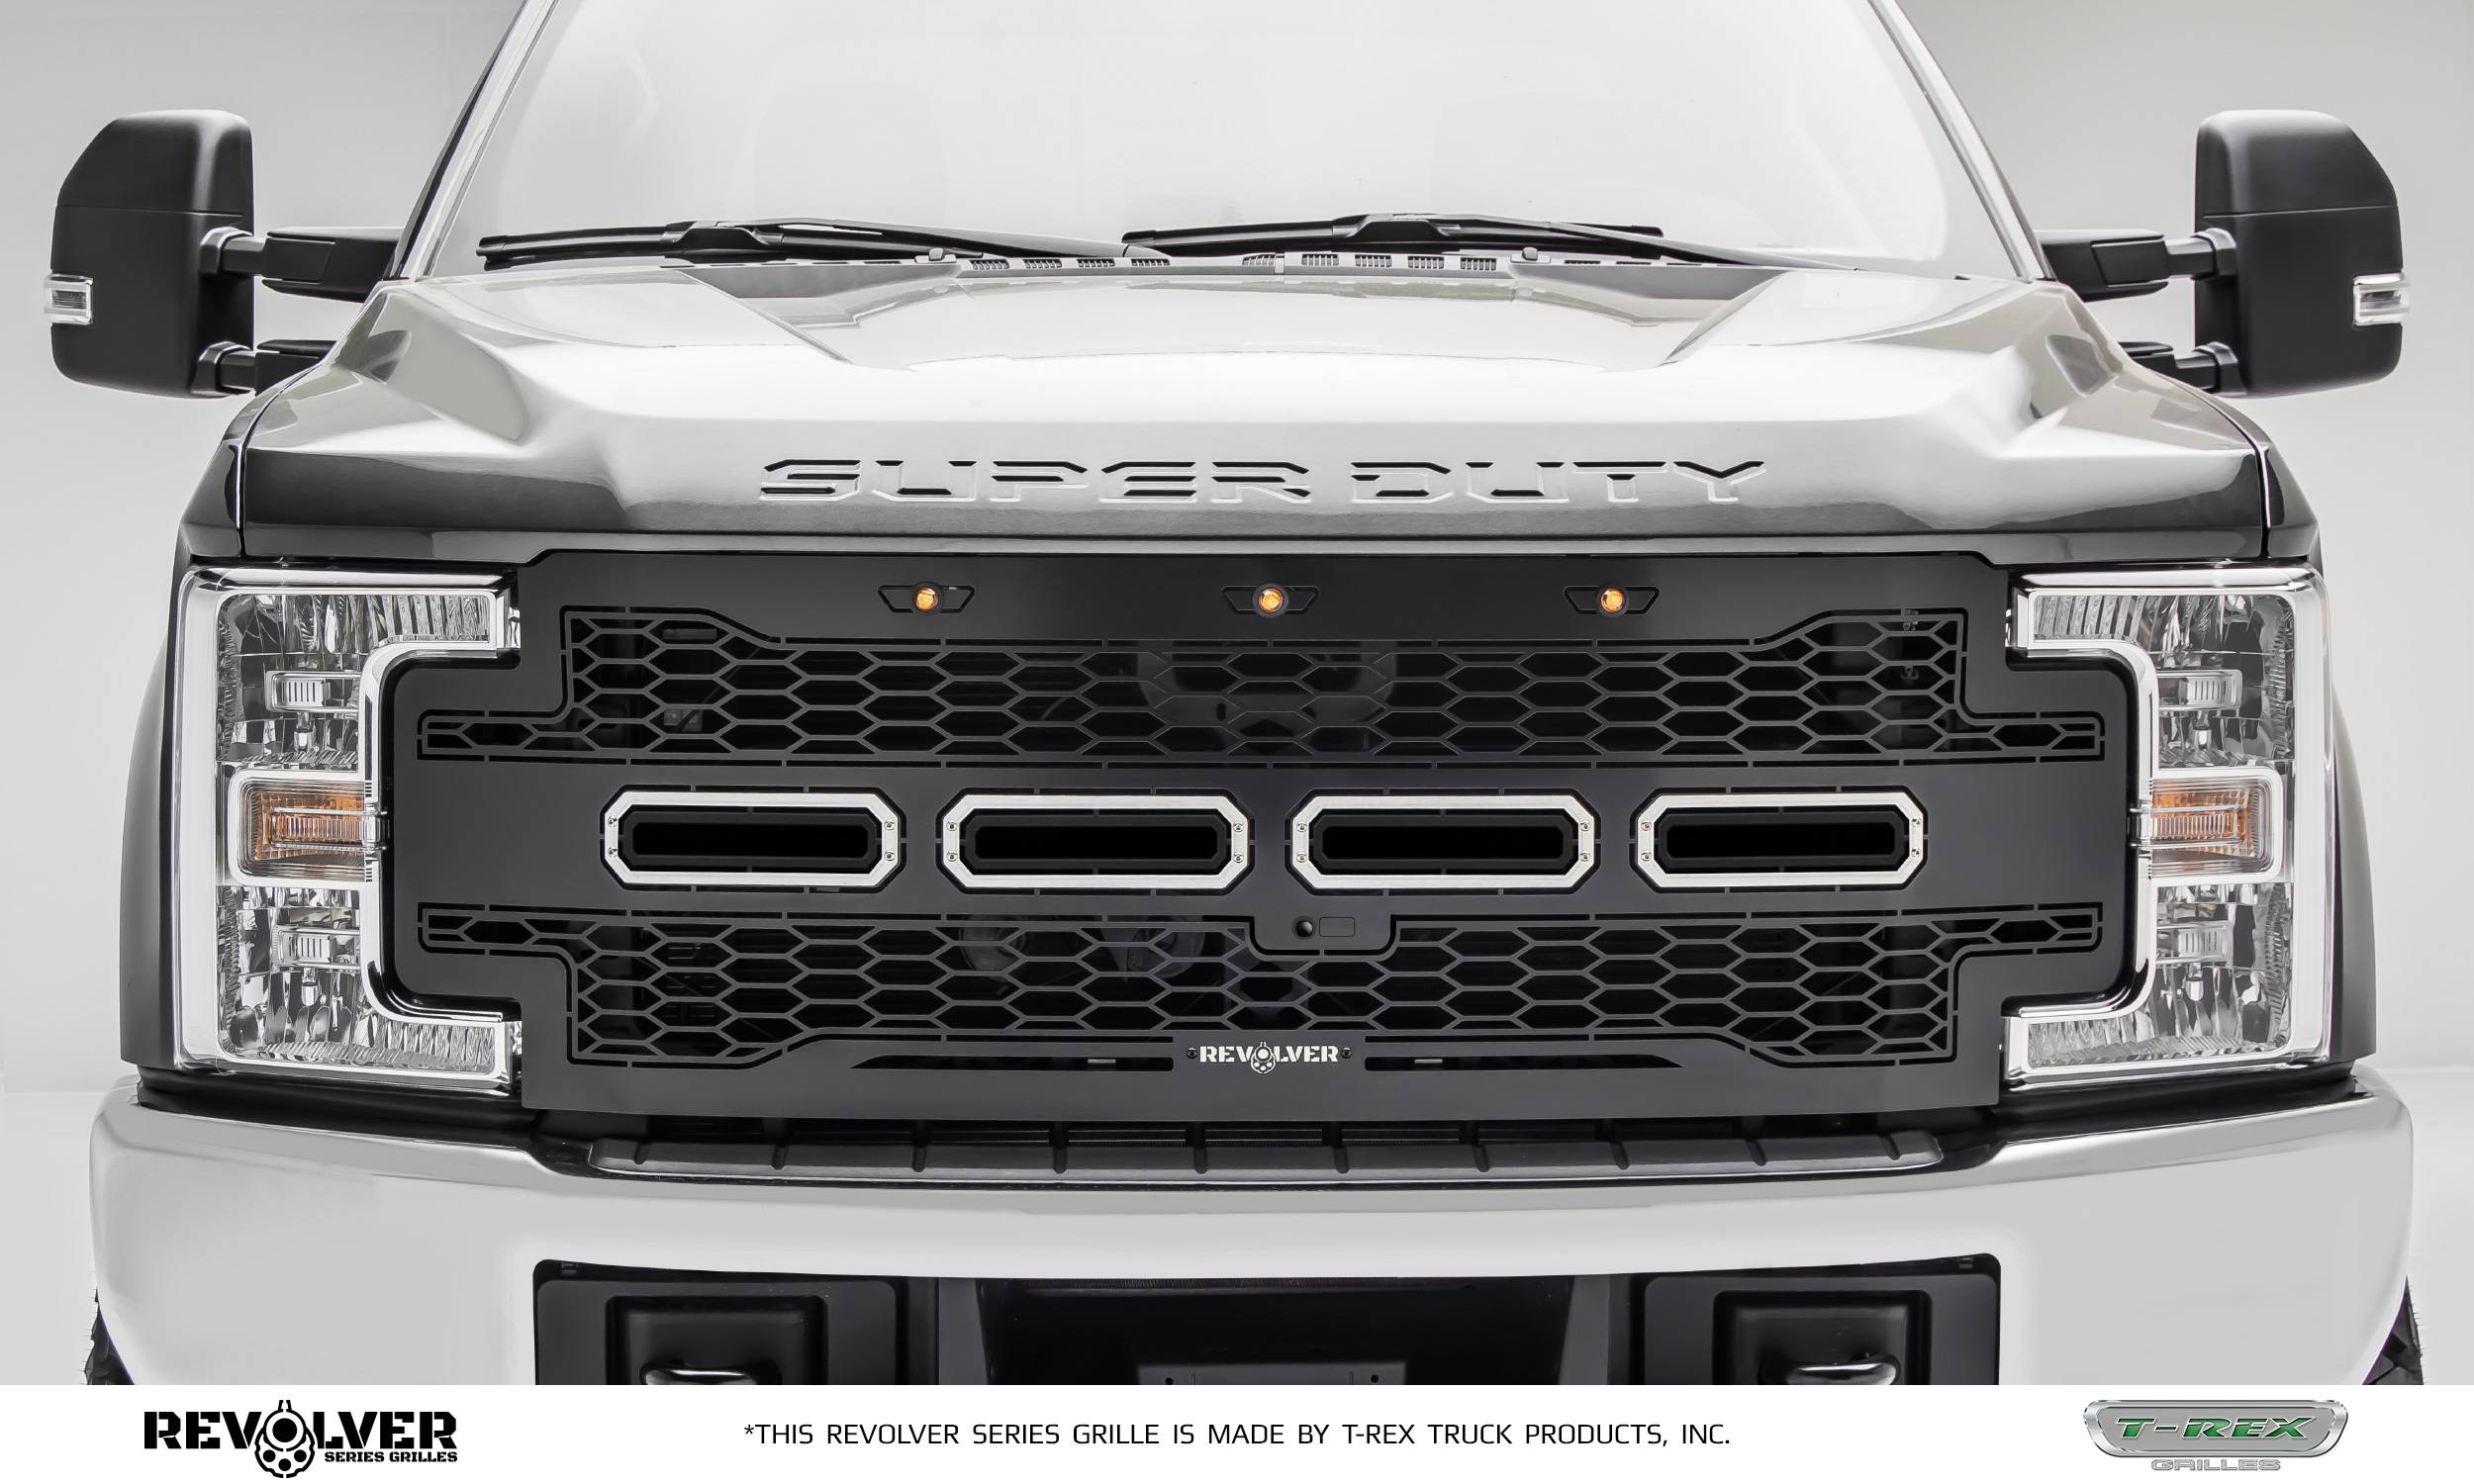 T-REX Grilles - 2017-2019 Super Duty Revolver Grille, Black, 1 Pc, Replacement, Chrome Studs, Fits Vehicles with Camera - PN #6515651